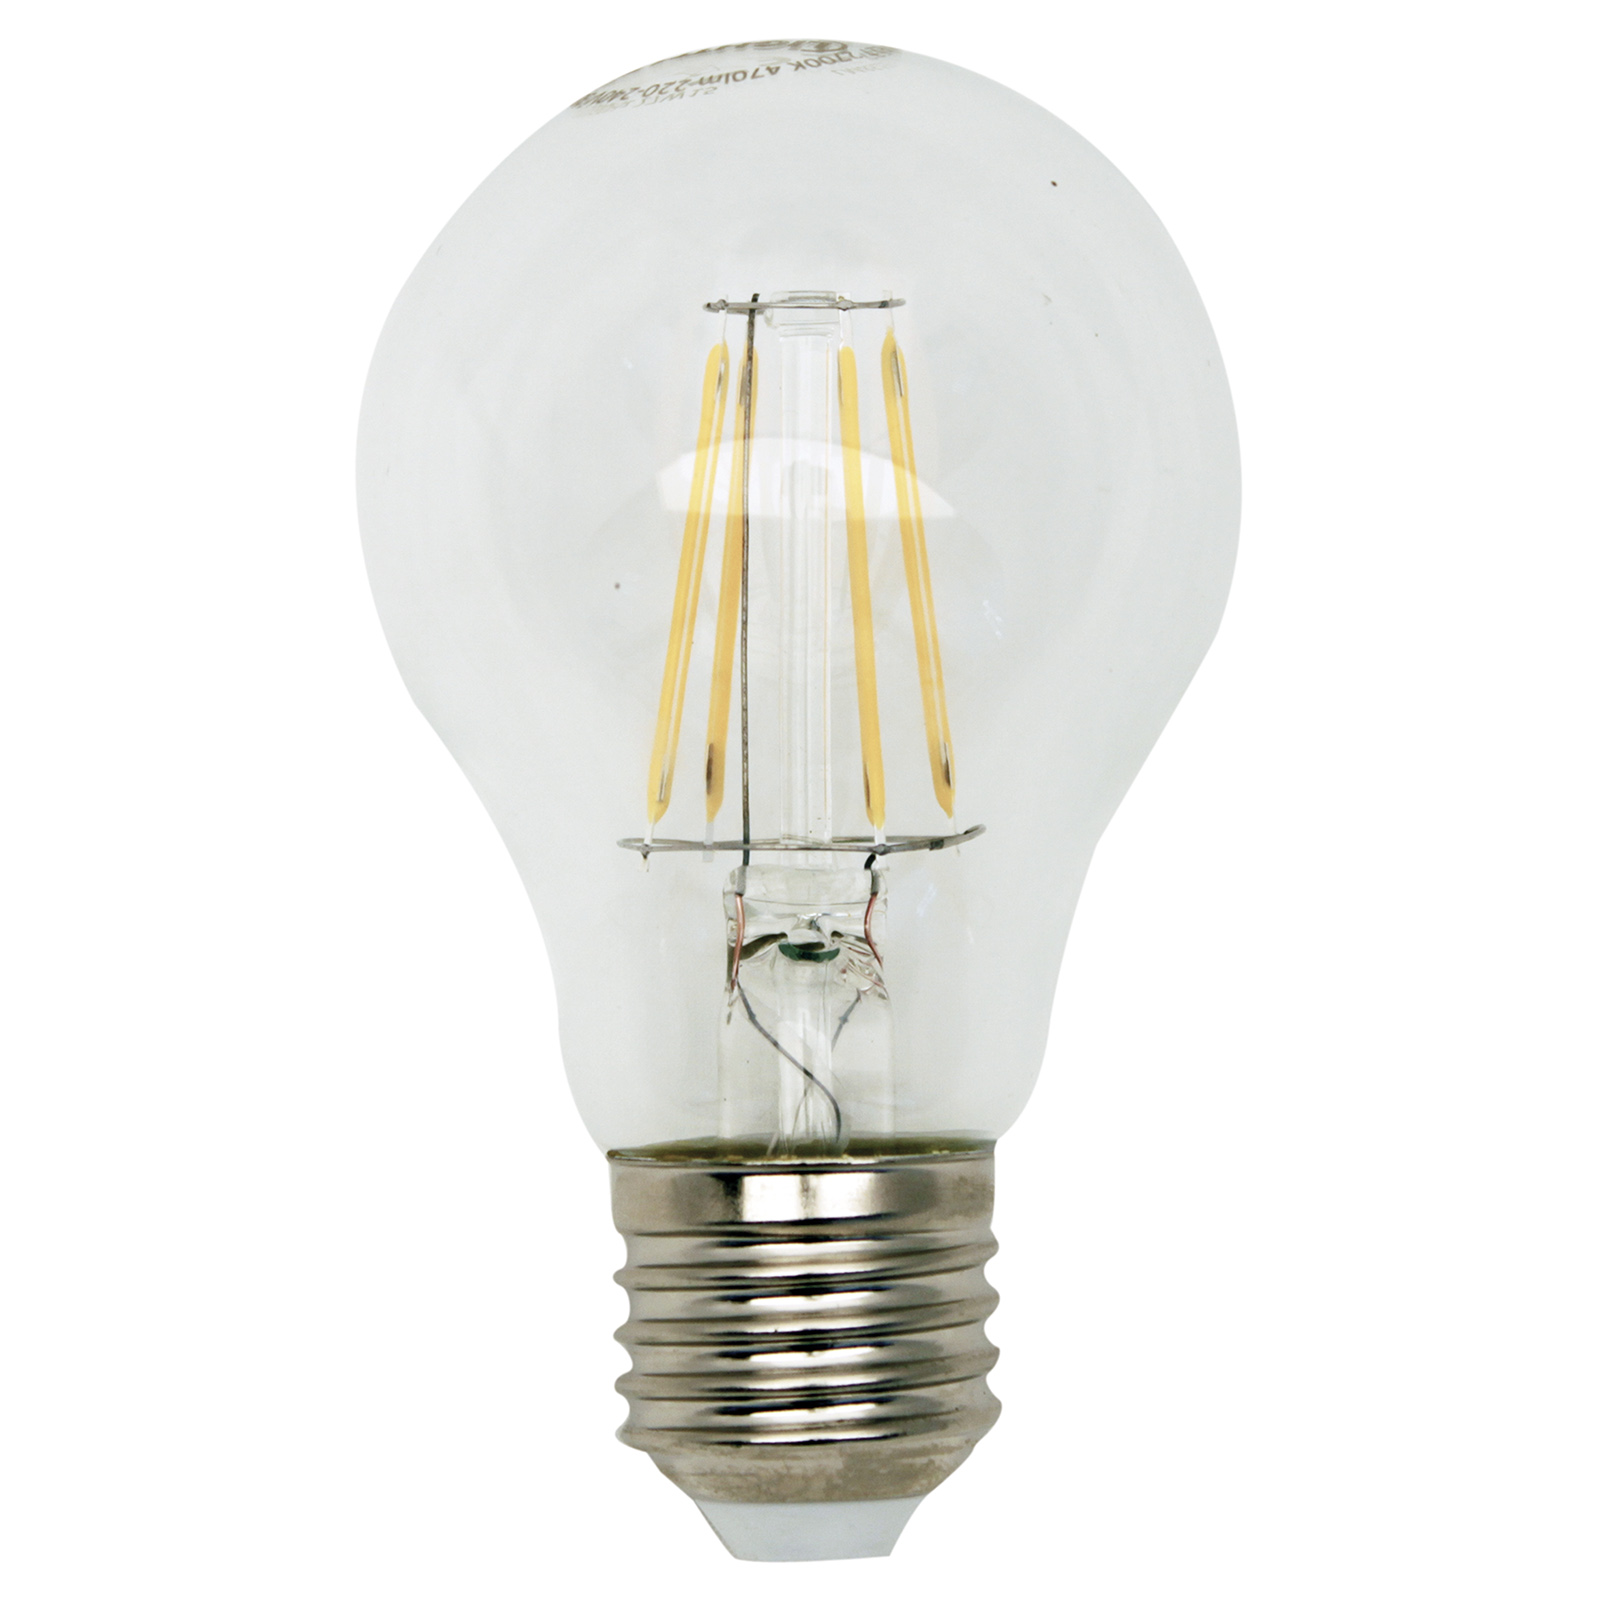 LED-Glühlampe Filament - E27 - 5 Watt - warmweiß